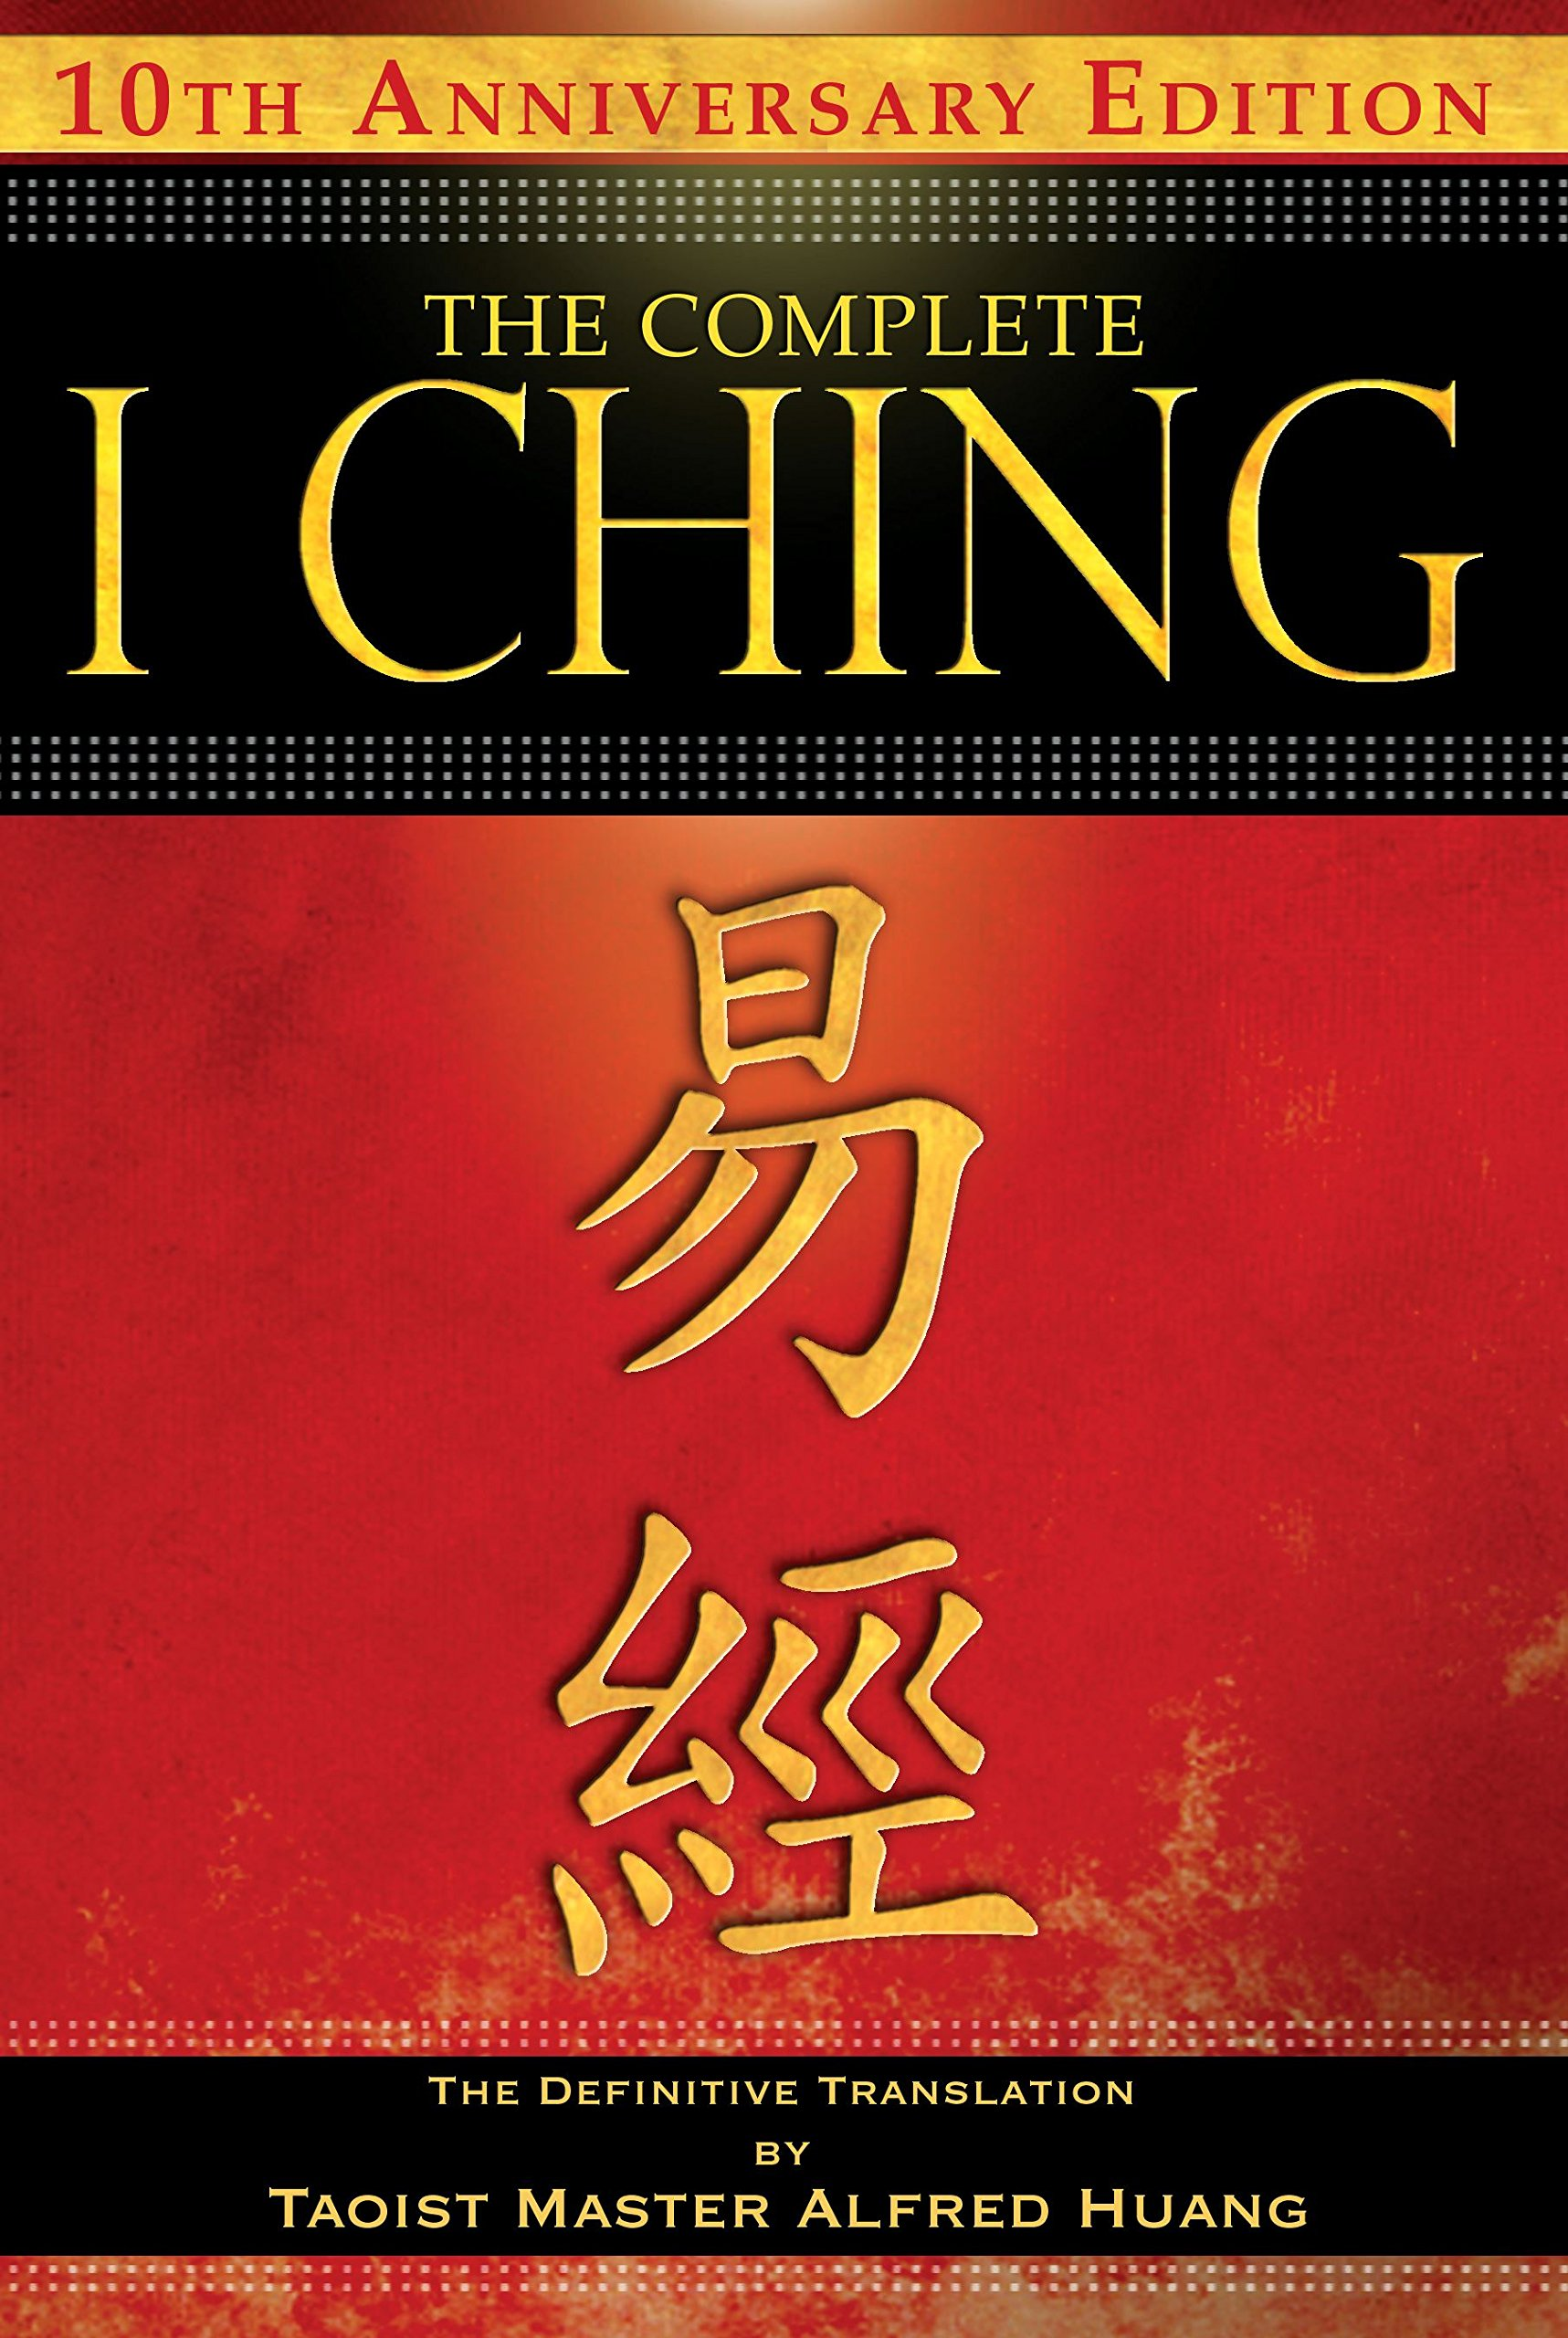 The complete i ching _ 10th anniversary edition the definitive translation by taoist master alfred huang amazon co uk taoist master alfred huang